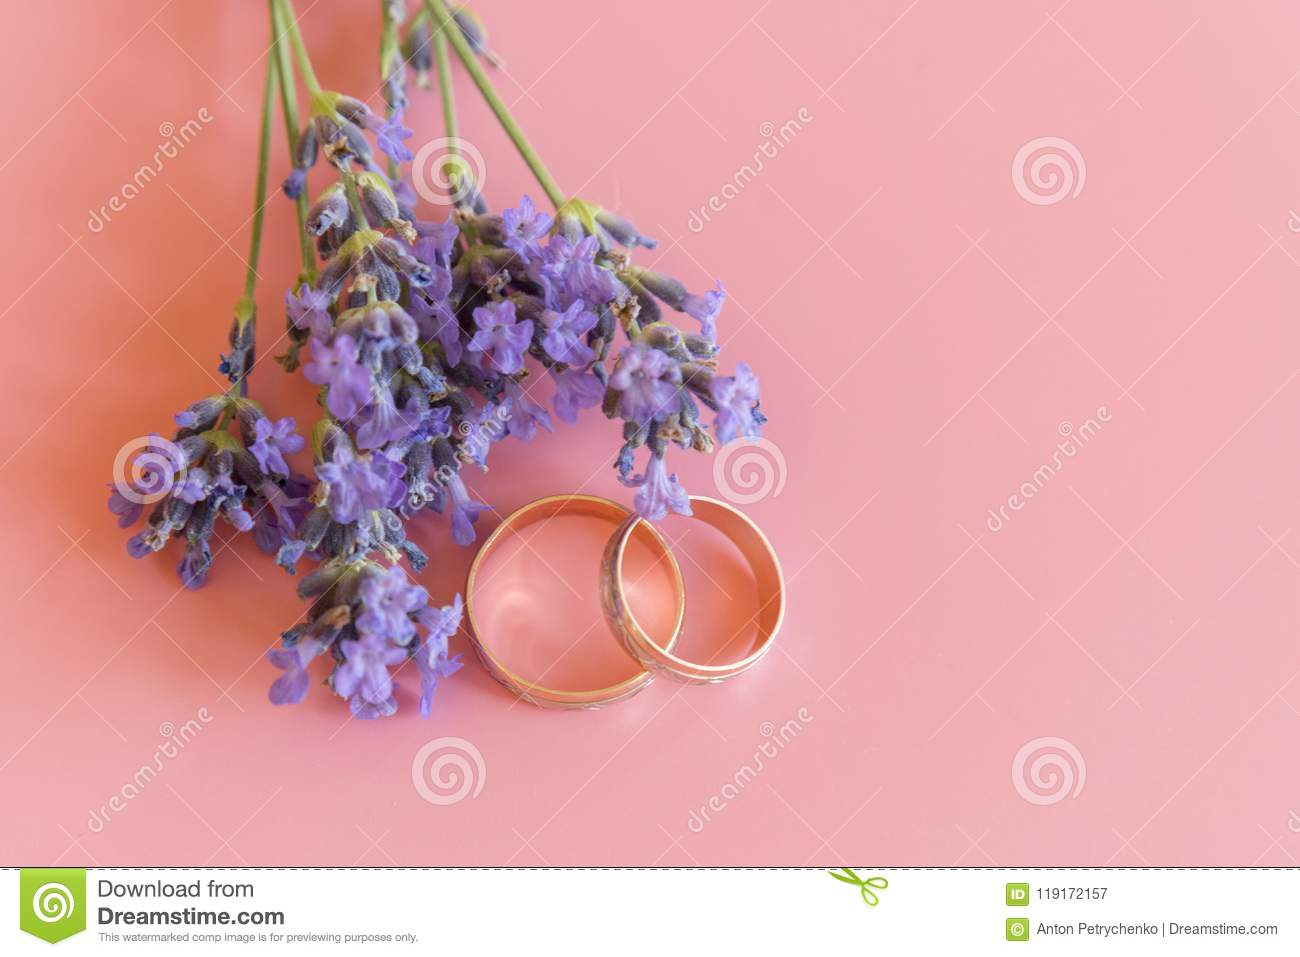 Wedding Rings And Lavender Flowers On A Pink Background Stock Image ...